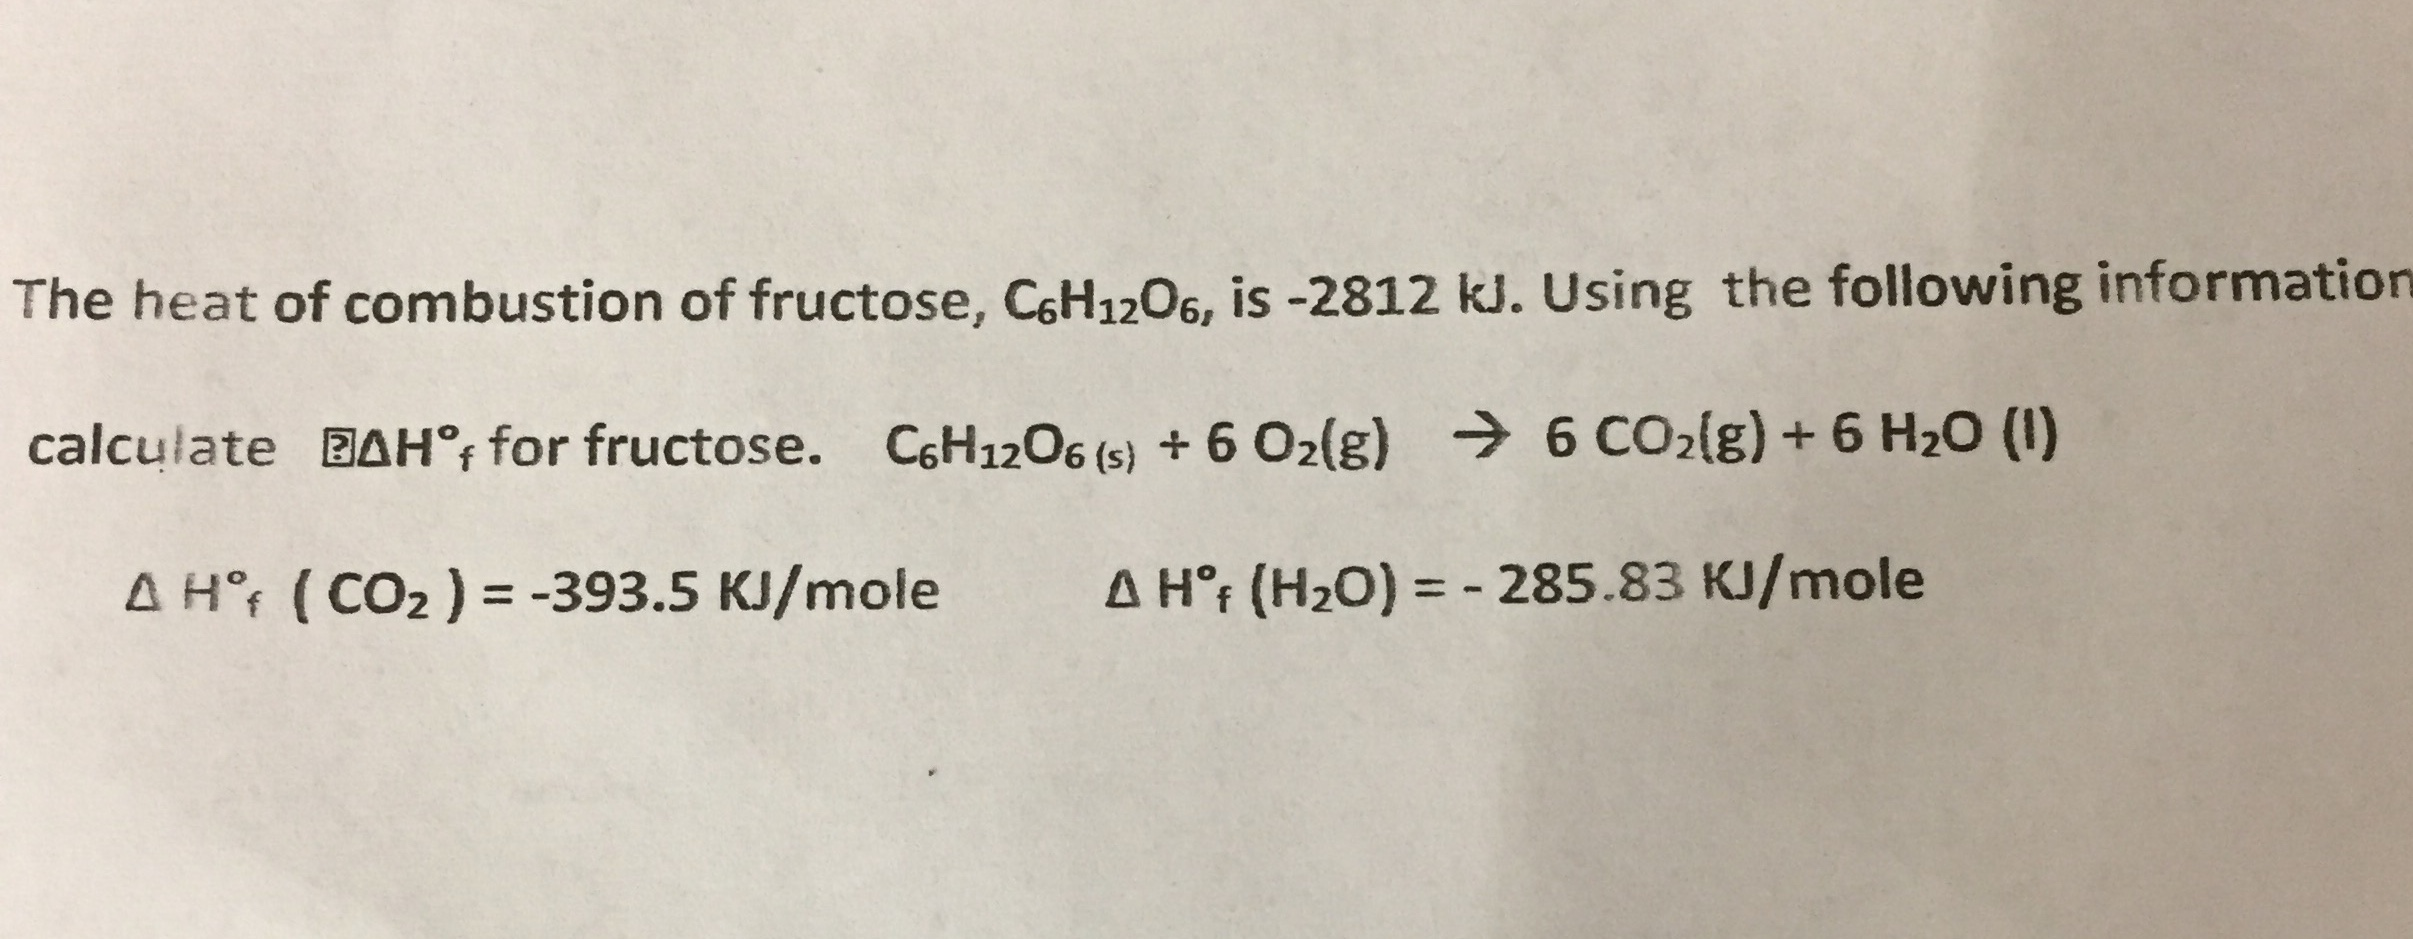 The heat of combustion of fructose, CHi206, is -2812 kJ. Using the following information calculate BAH , for fructose. CH120ss)6 O2(g) 6 cO2(g)+ 6 H20 (1) Δ HT ( CO2 )--393.5 KJ/mole Δ Hof (H20)--285.83 KJ/mole